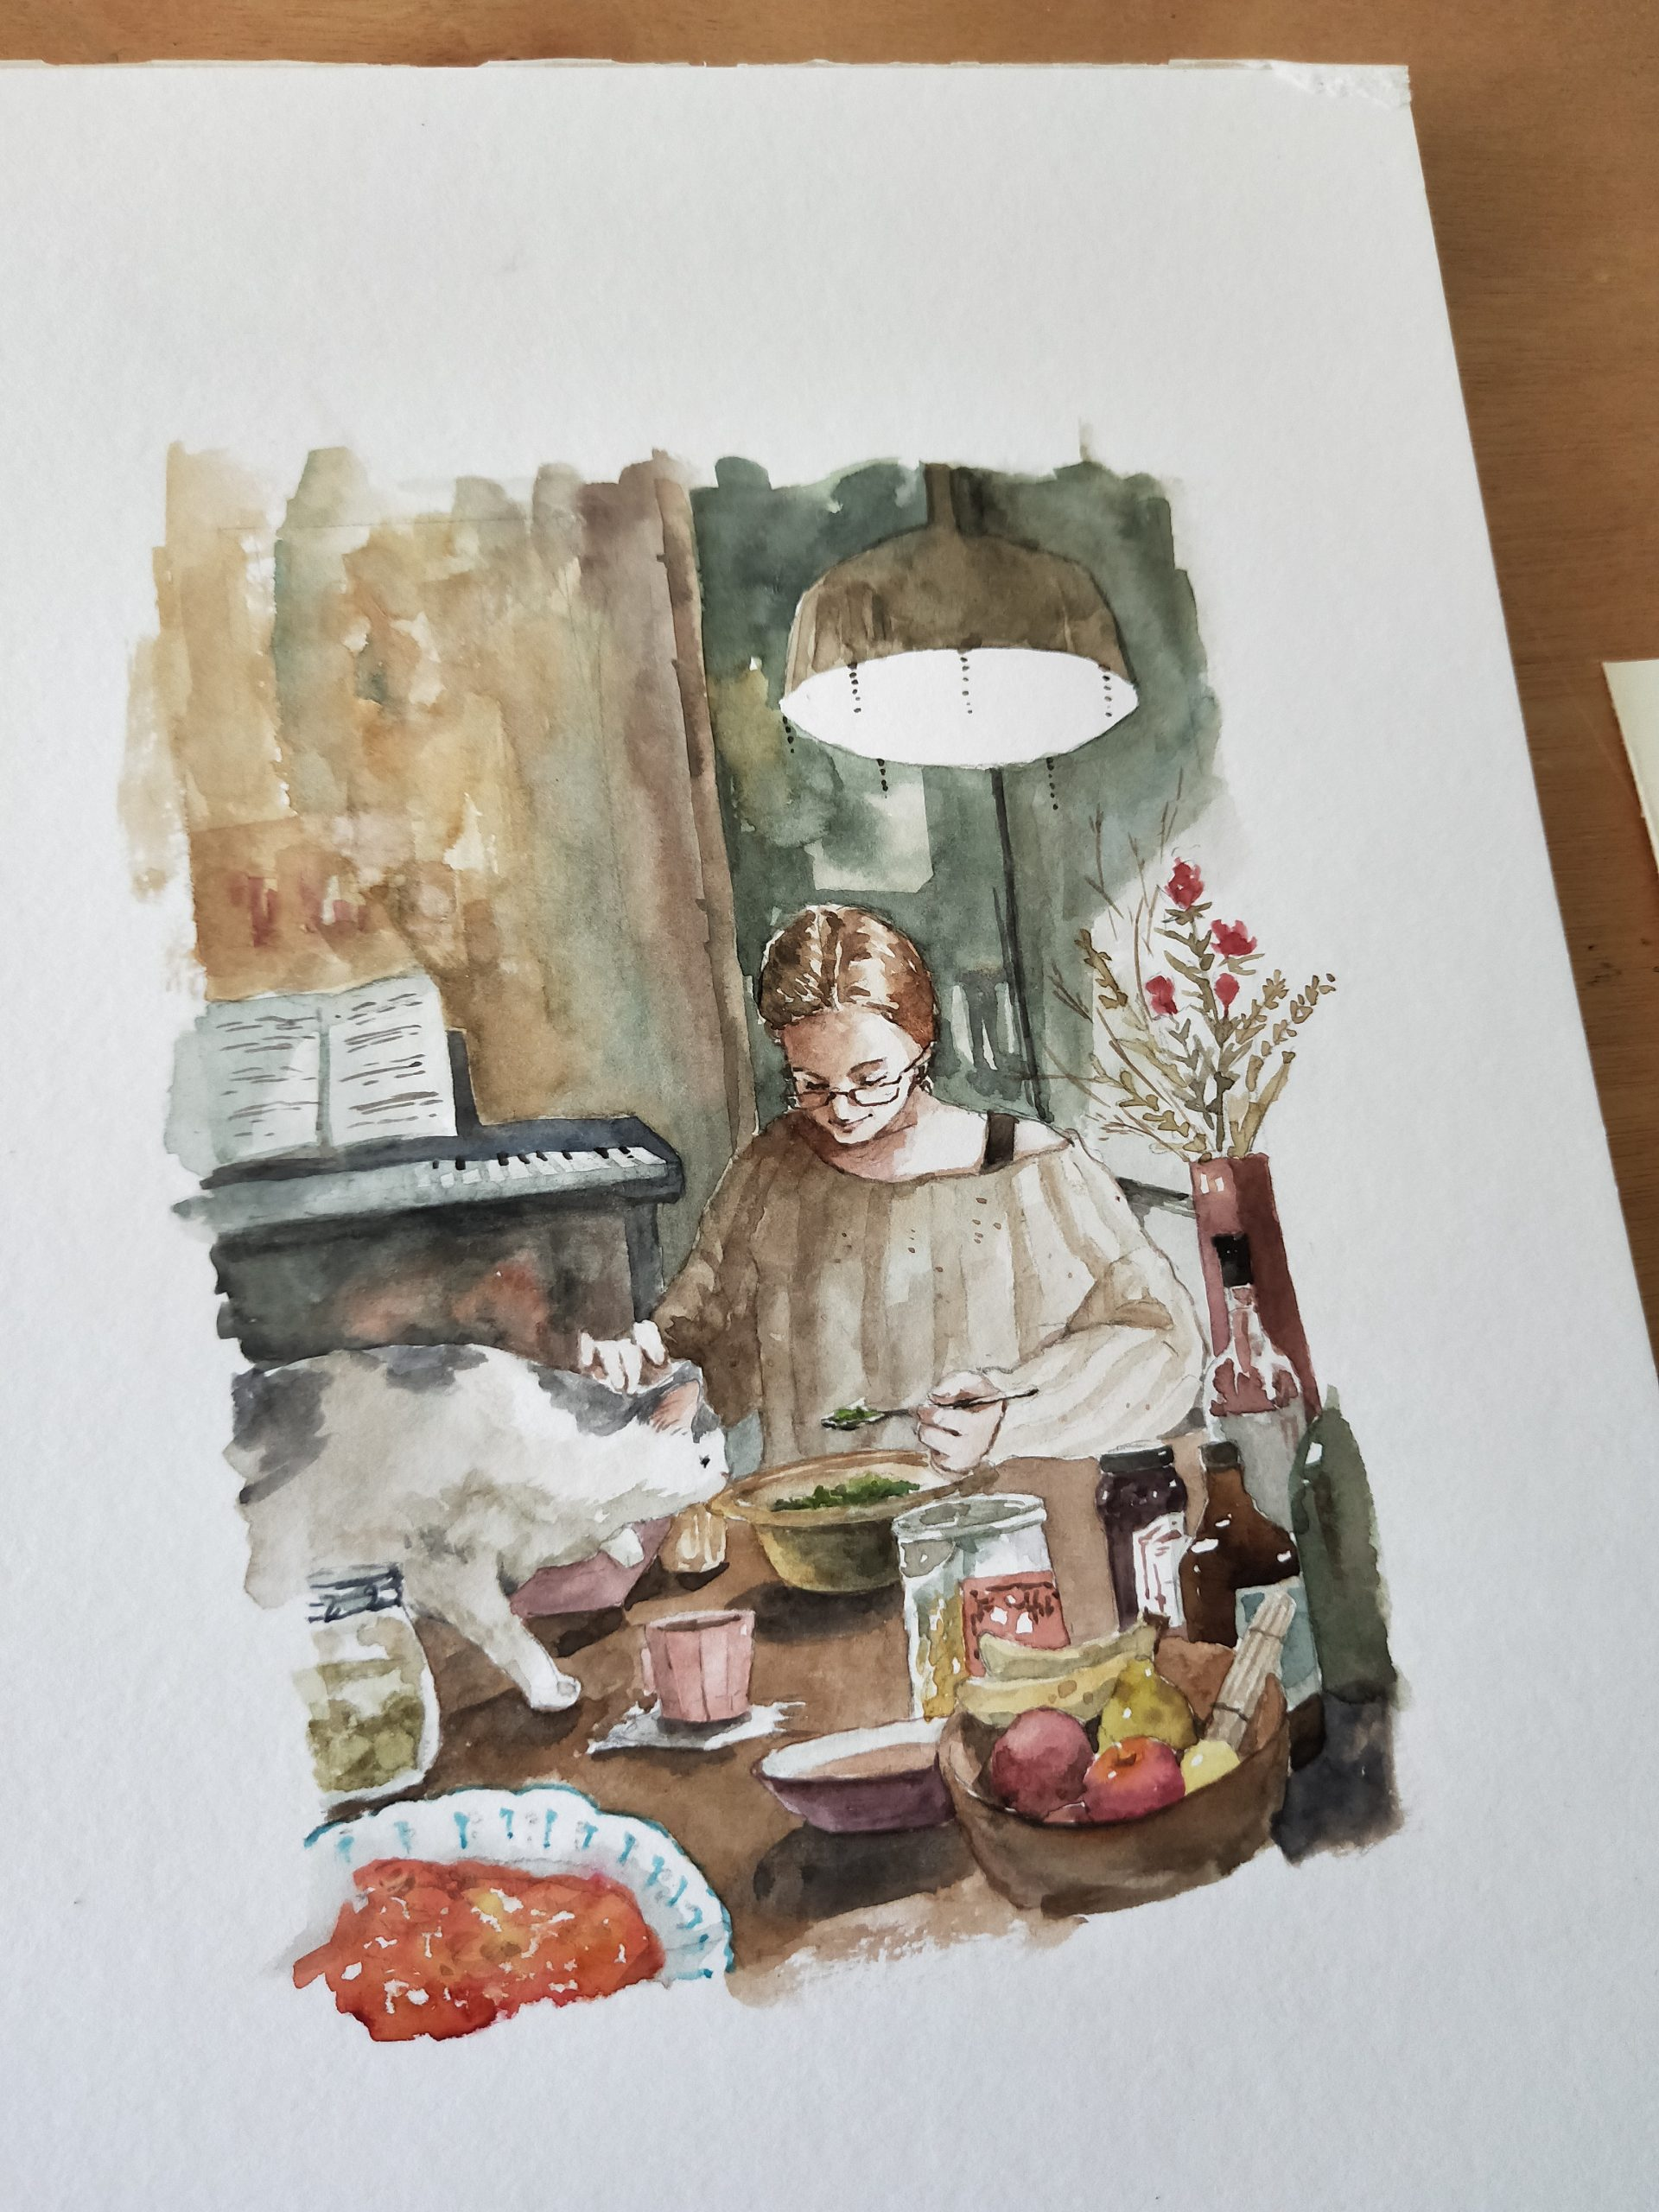 Watercolour painting for sale